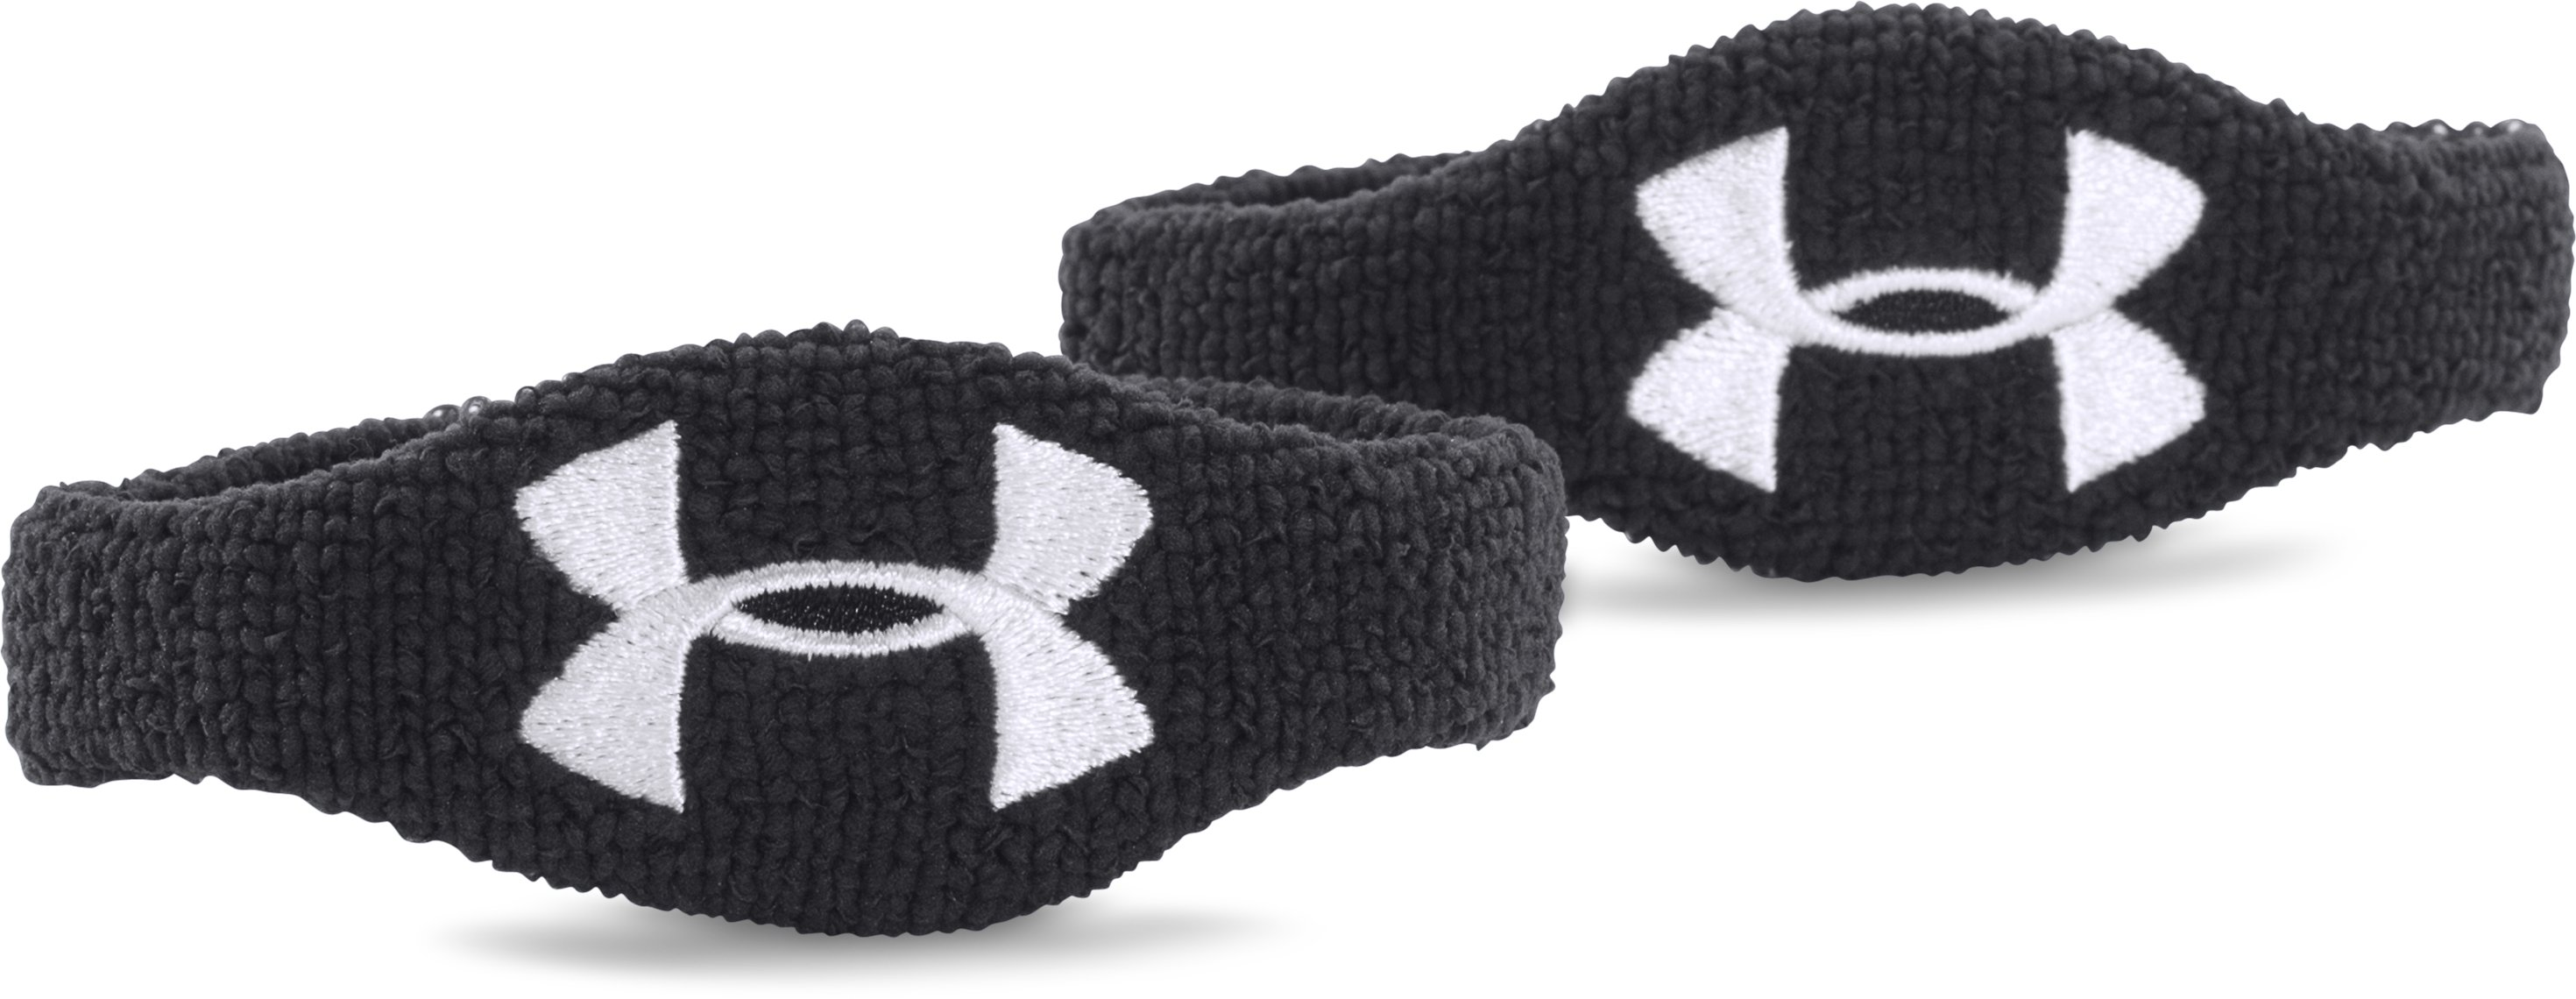 "fashionable wristbands UA 1/2"" Performance Wristband – 2-Pack Soaks up sweat as advertised."